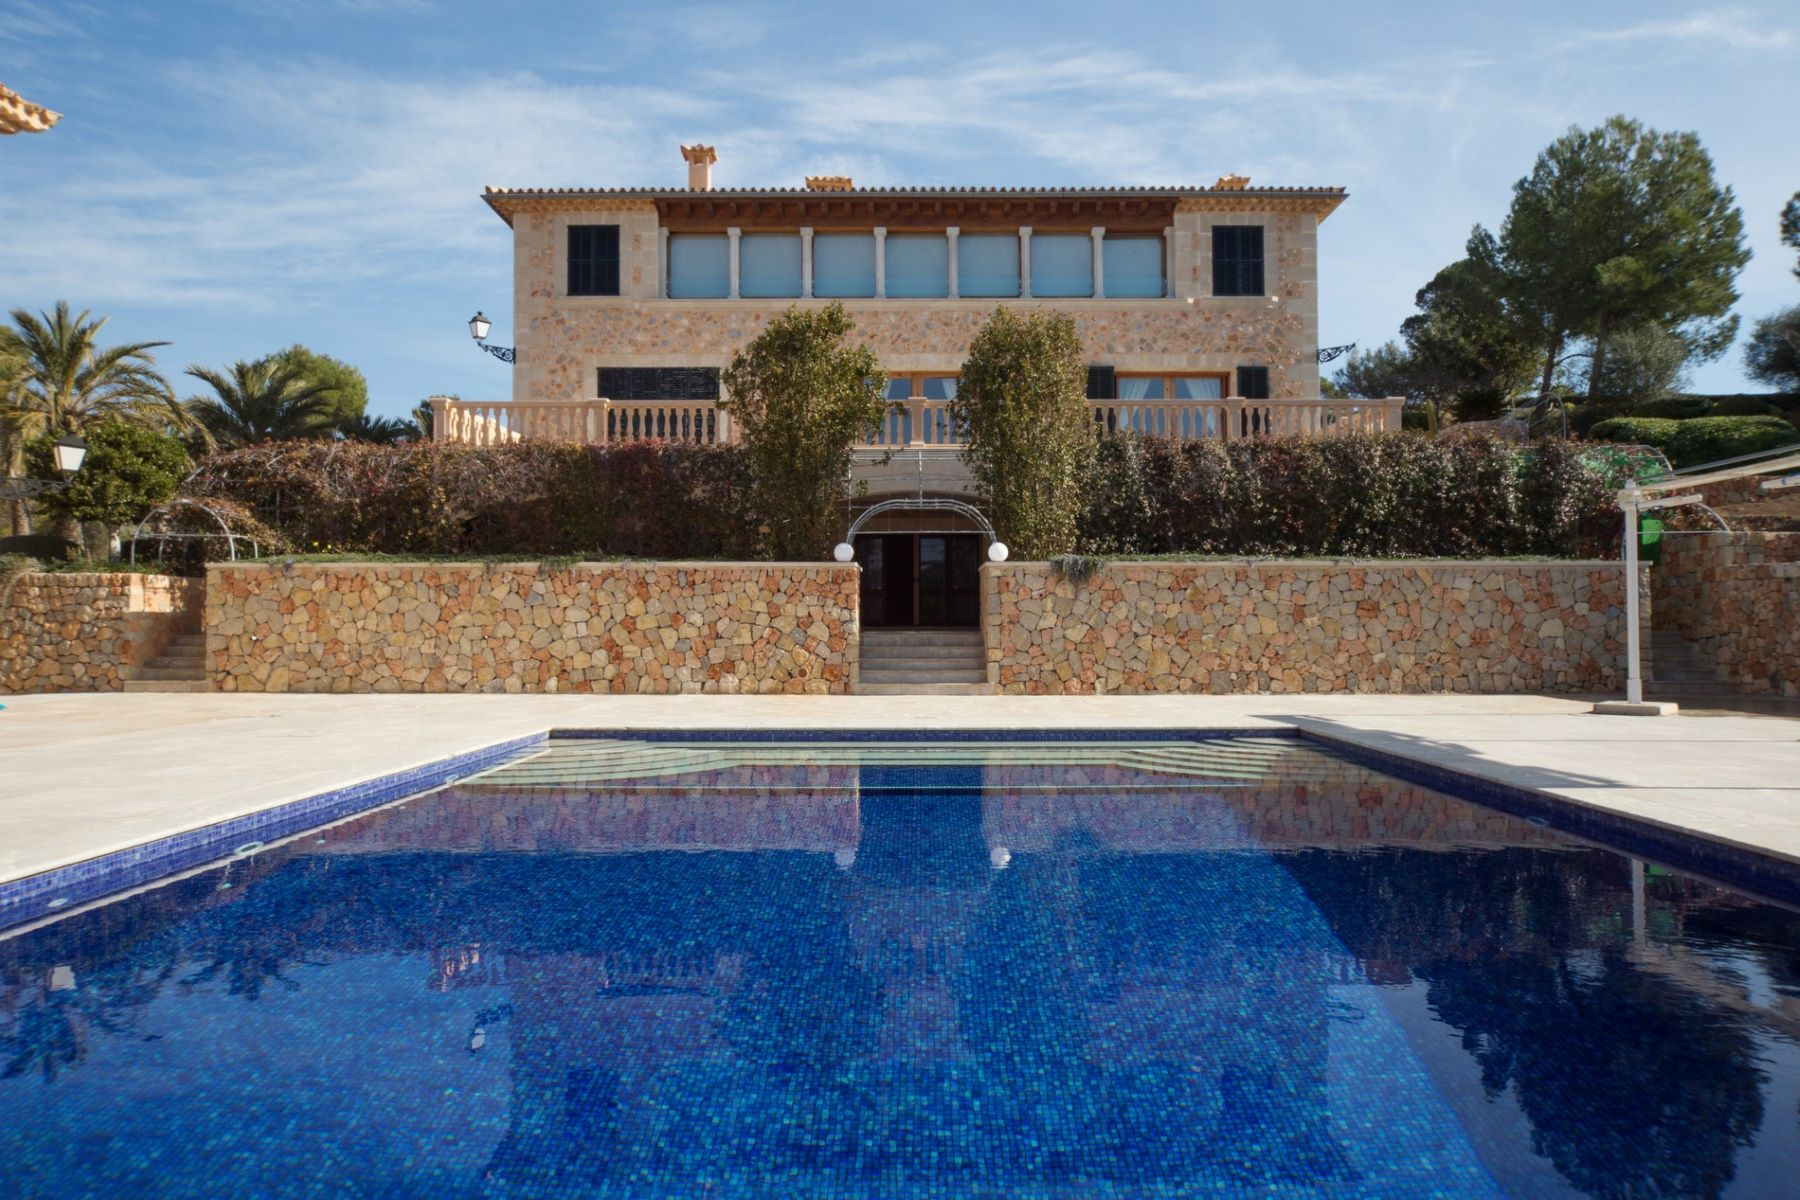 Single Family Home for Sale at Stunning mansion in Camp de Mar Other Balearic Islands, Balearic Islands Spain